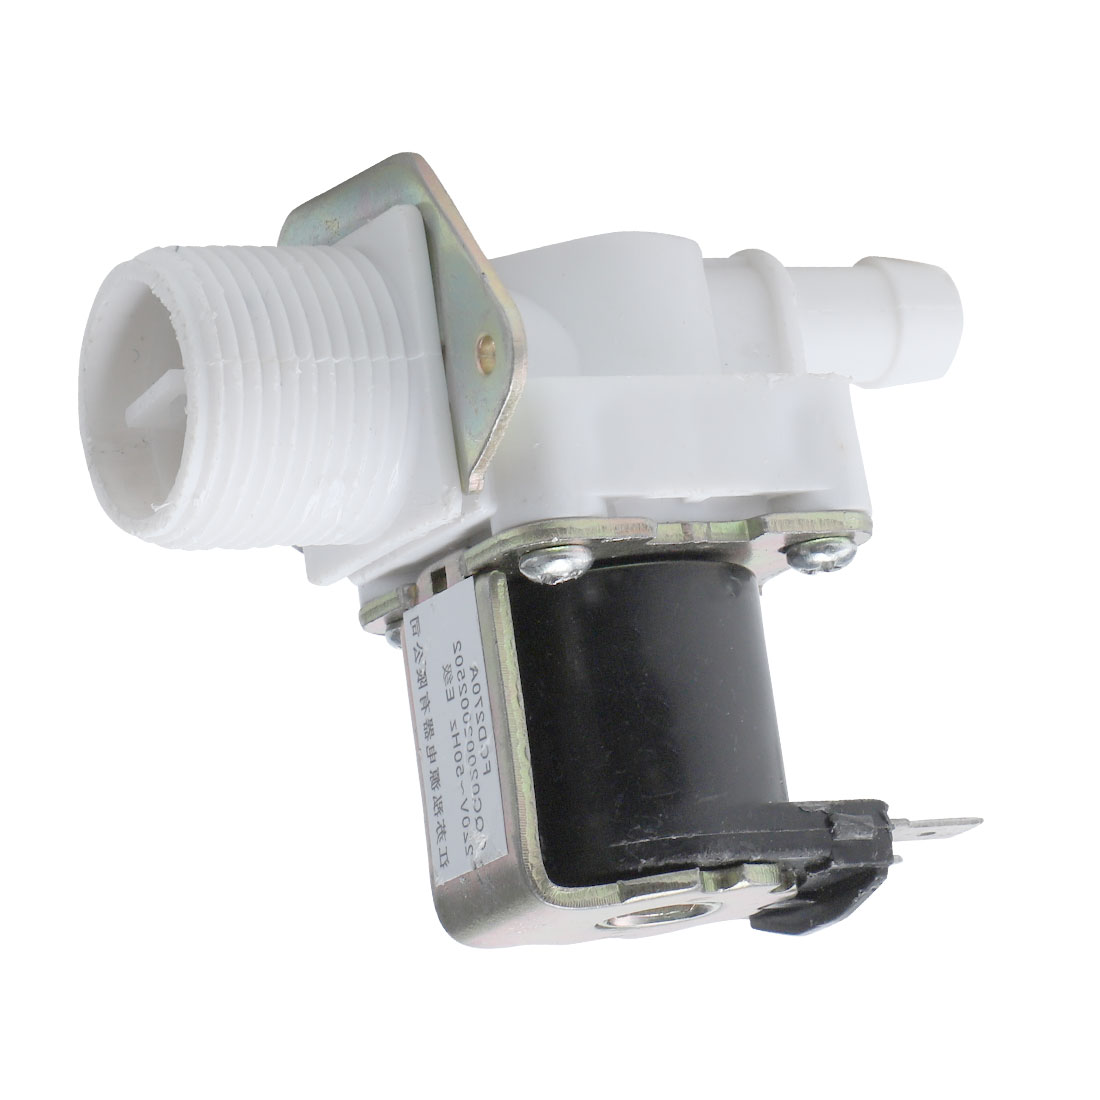 AC 220V 26mA 26mm Threaded Water Inlet Solenoid Valve for Washing Machine